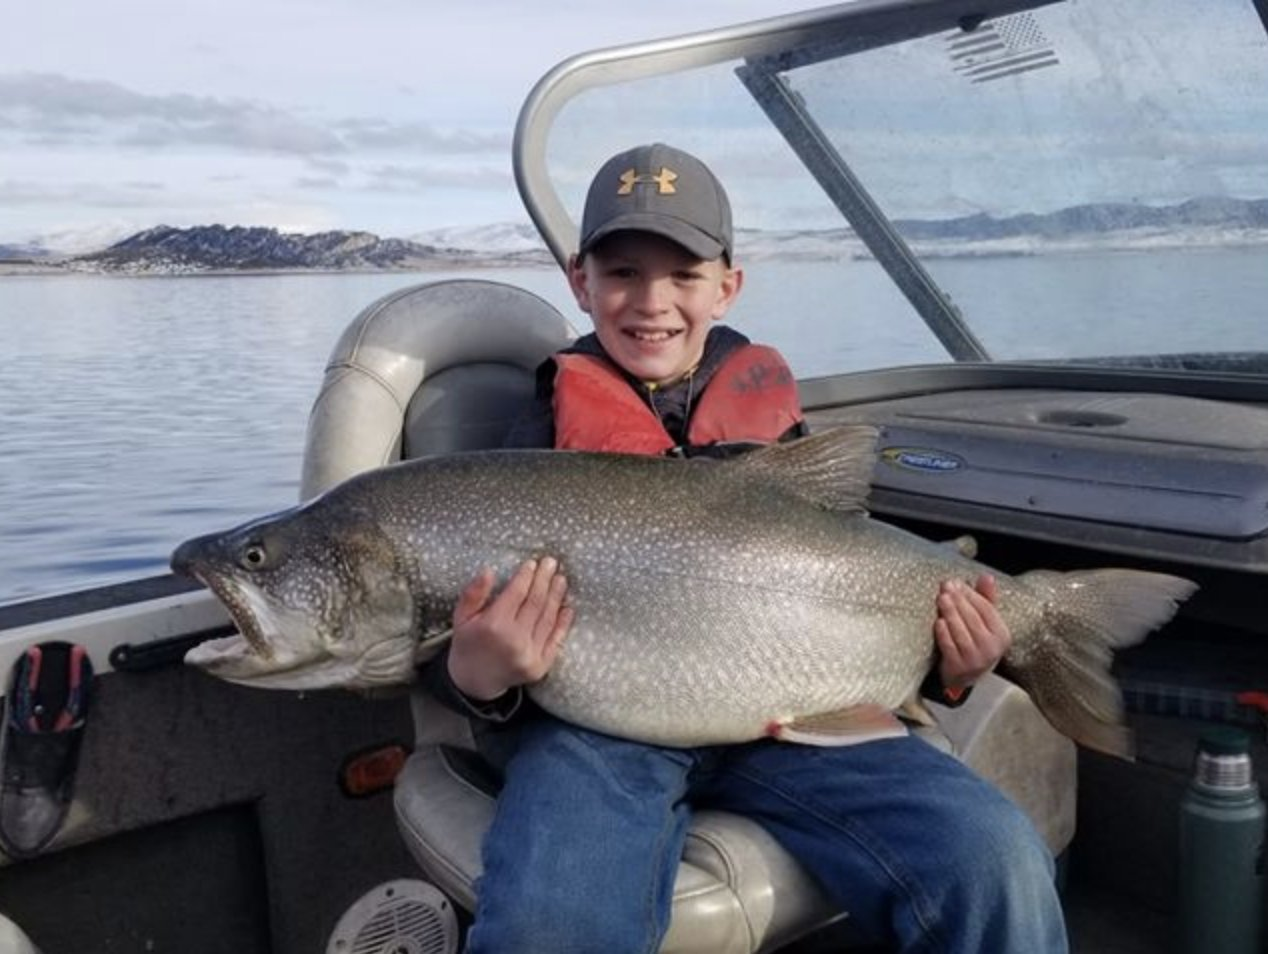 10-Year-Old Boy Catches Massive Trout - TLO Outdoors